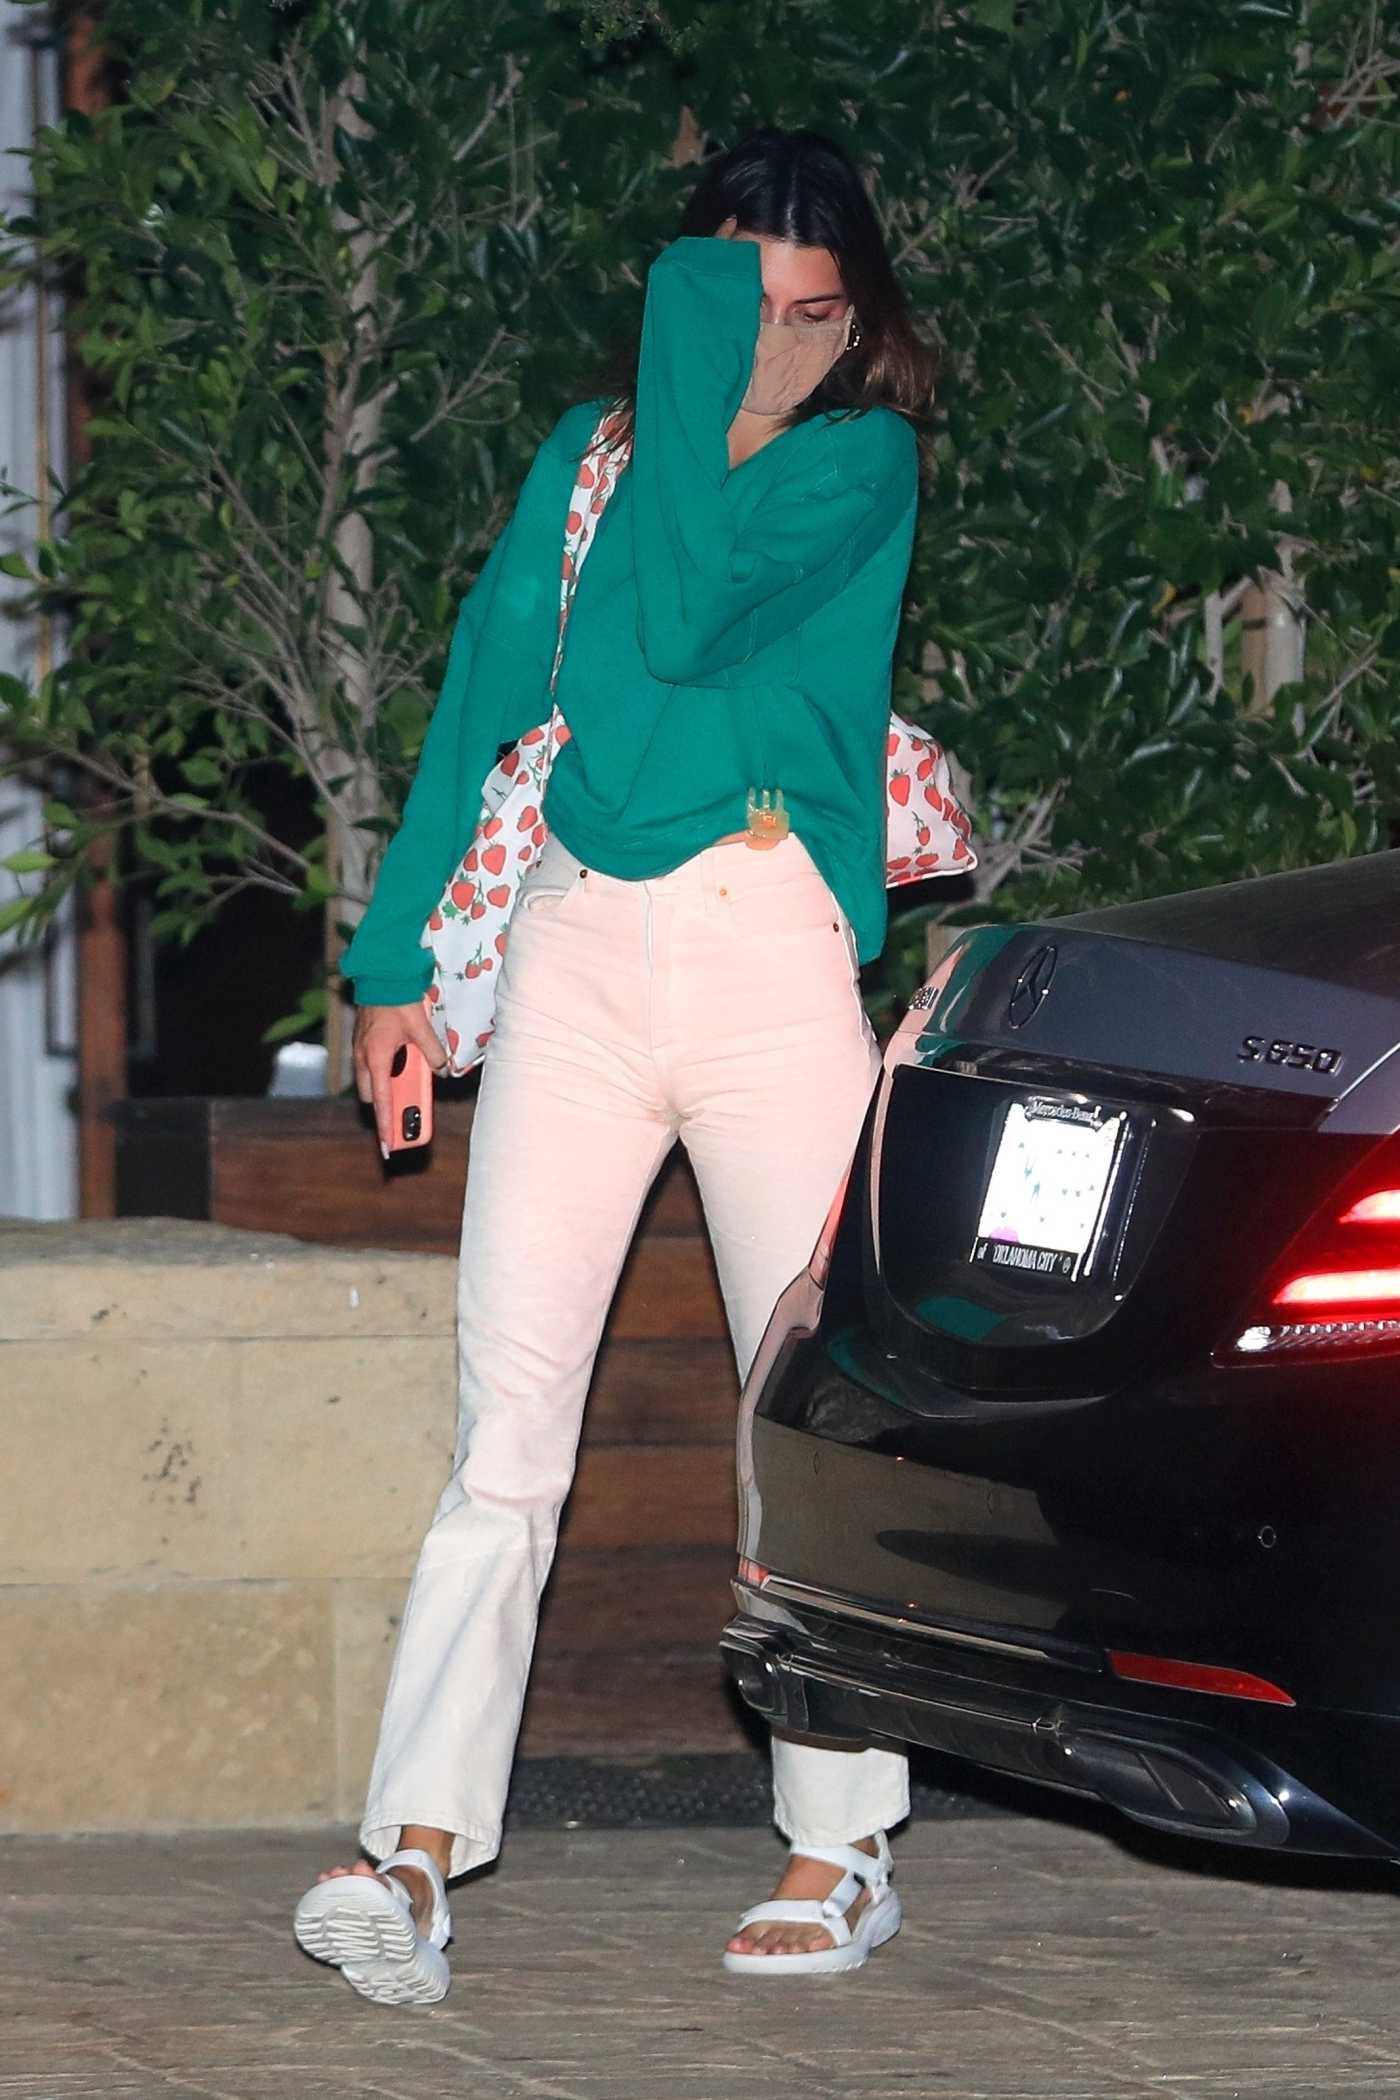 Kendall Jenner in a White Jeans Leaves Dinner at SoHo House in Malibu 09/06/2020